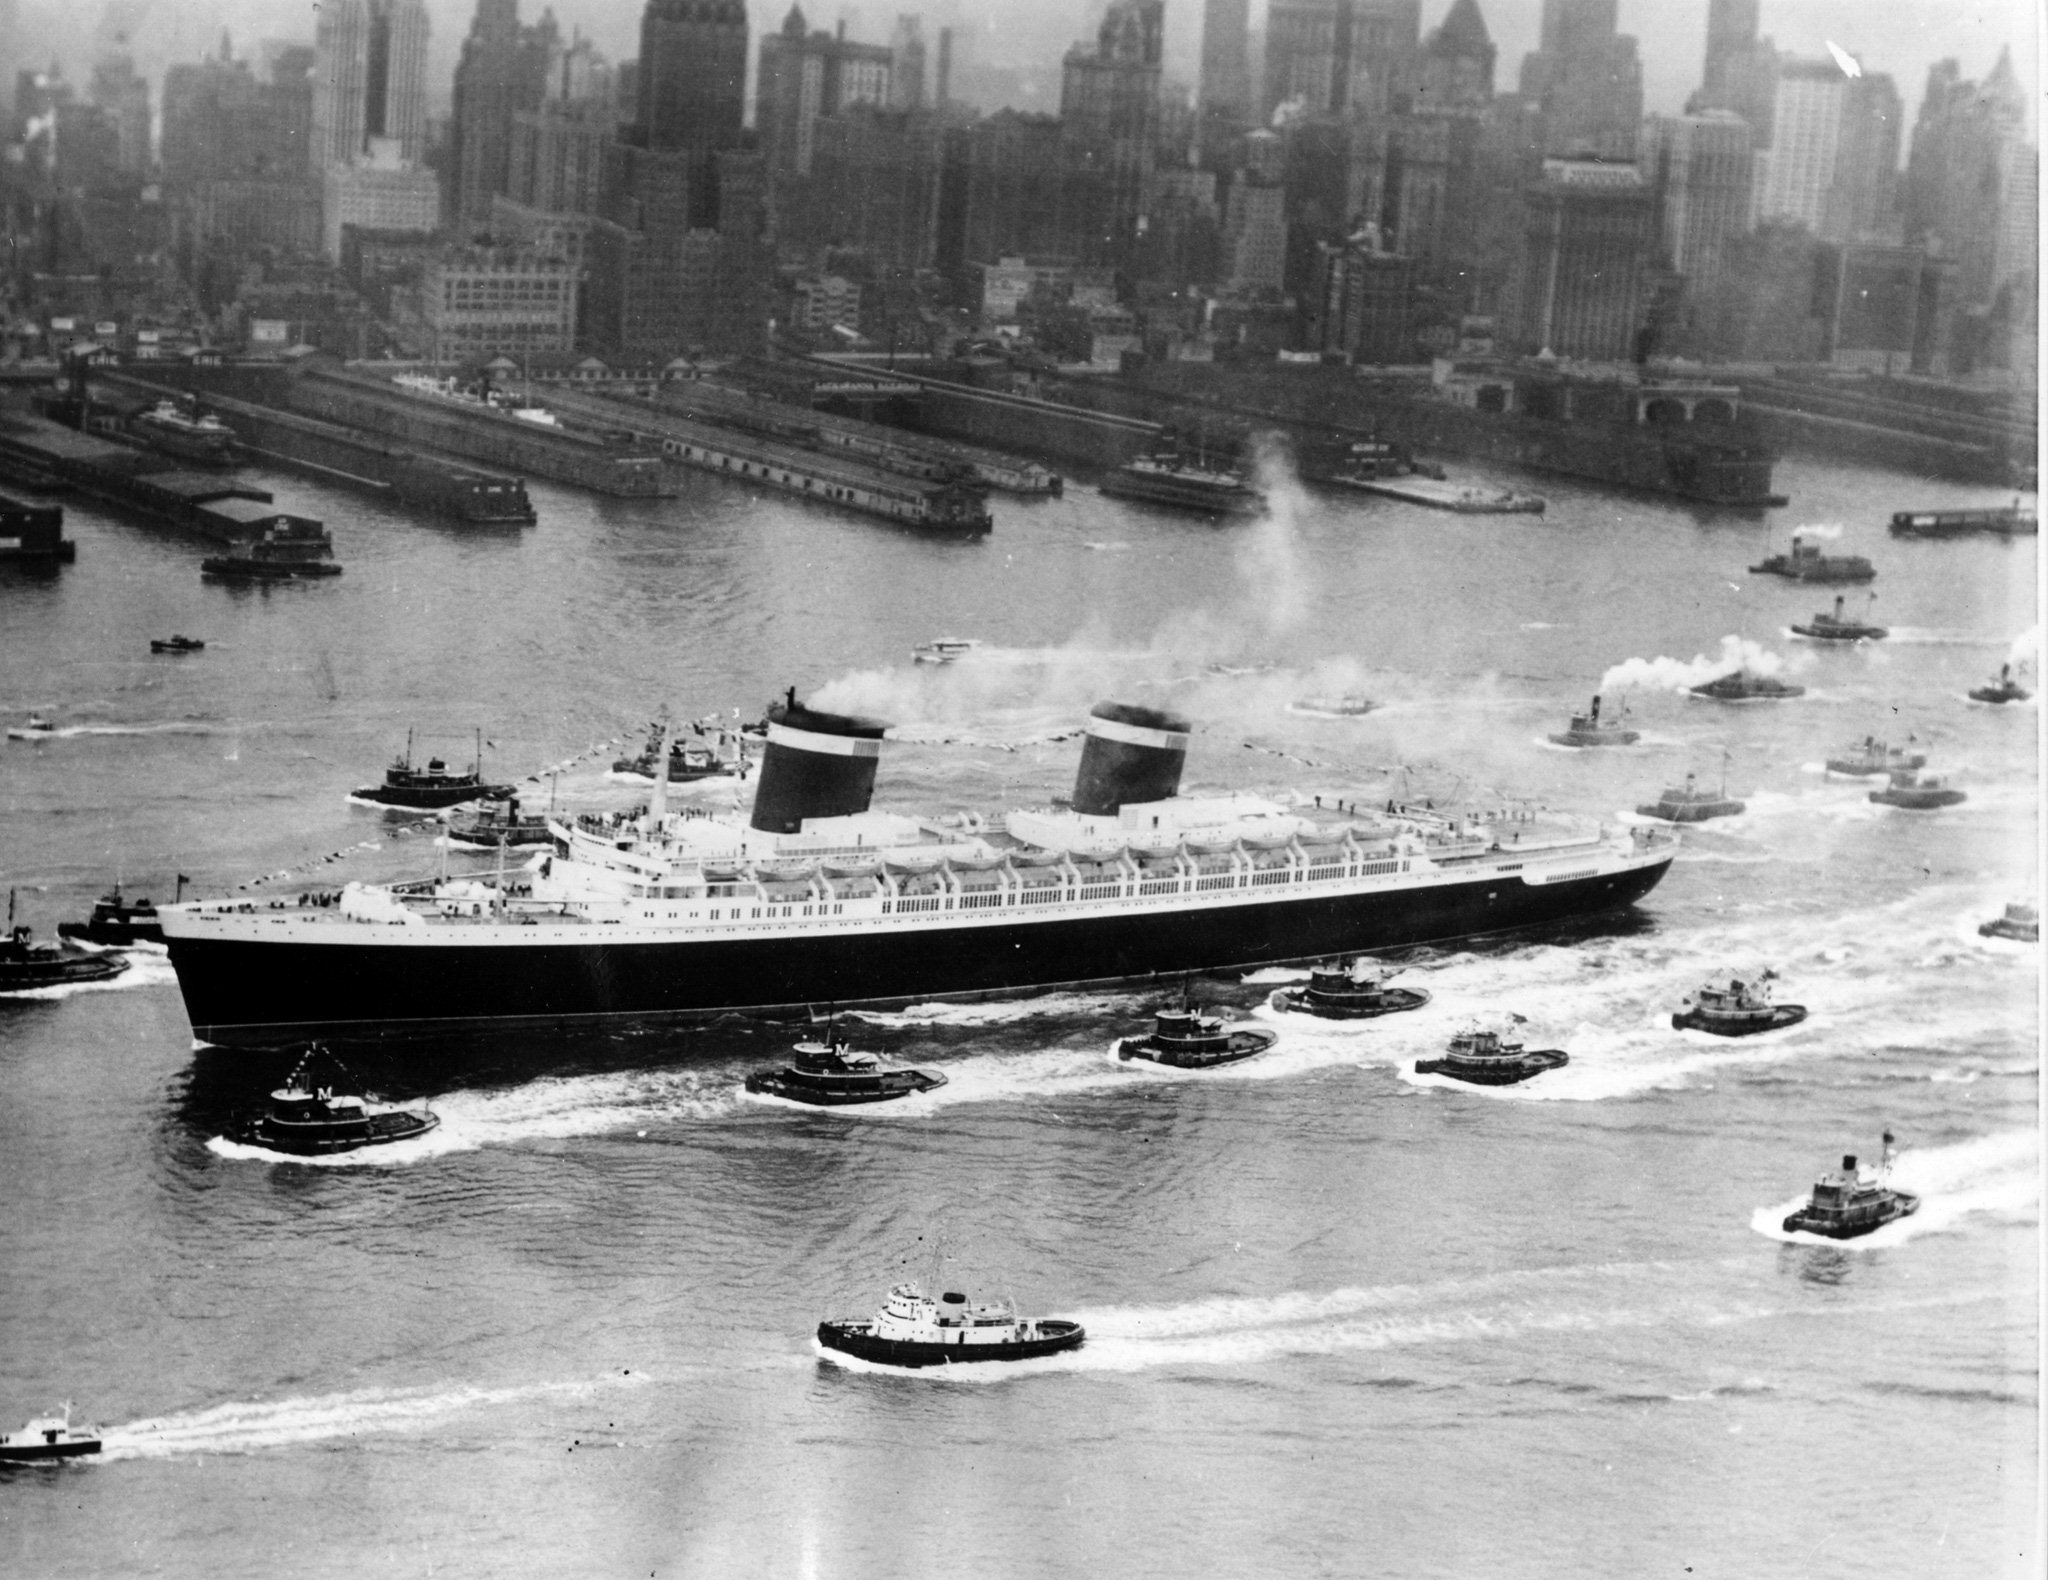 SS United States in New York harbor, July 1953.